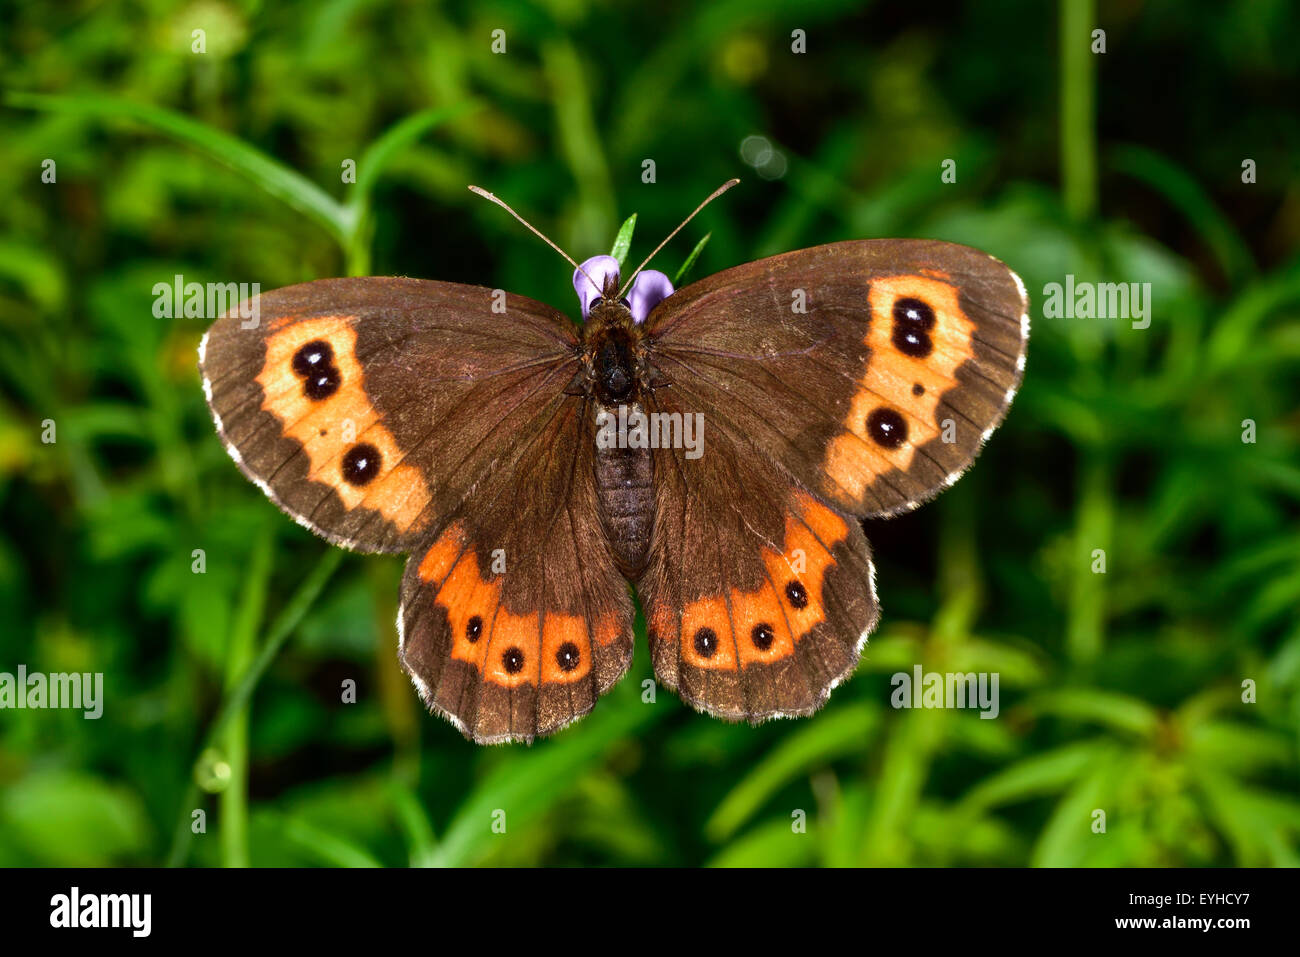 Closeup photo of the Bright-eyed Ringlet butterfly. - Stock Image